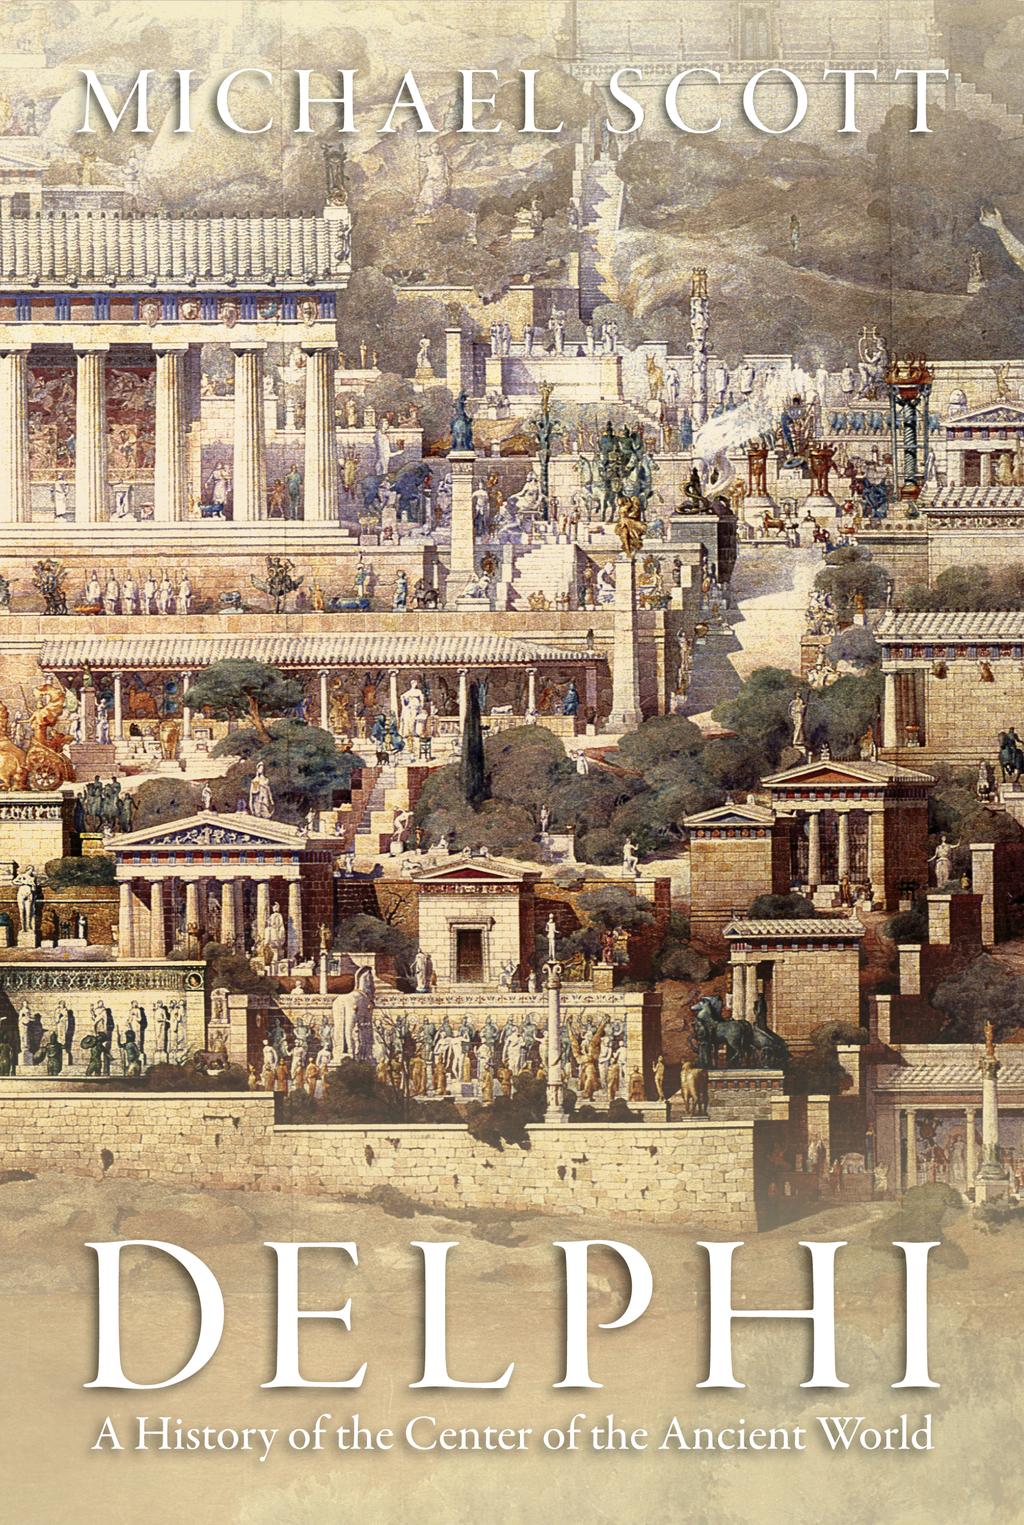 Delphi A History of the Center of the Ancient World